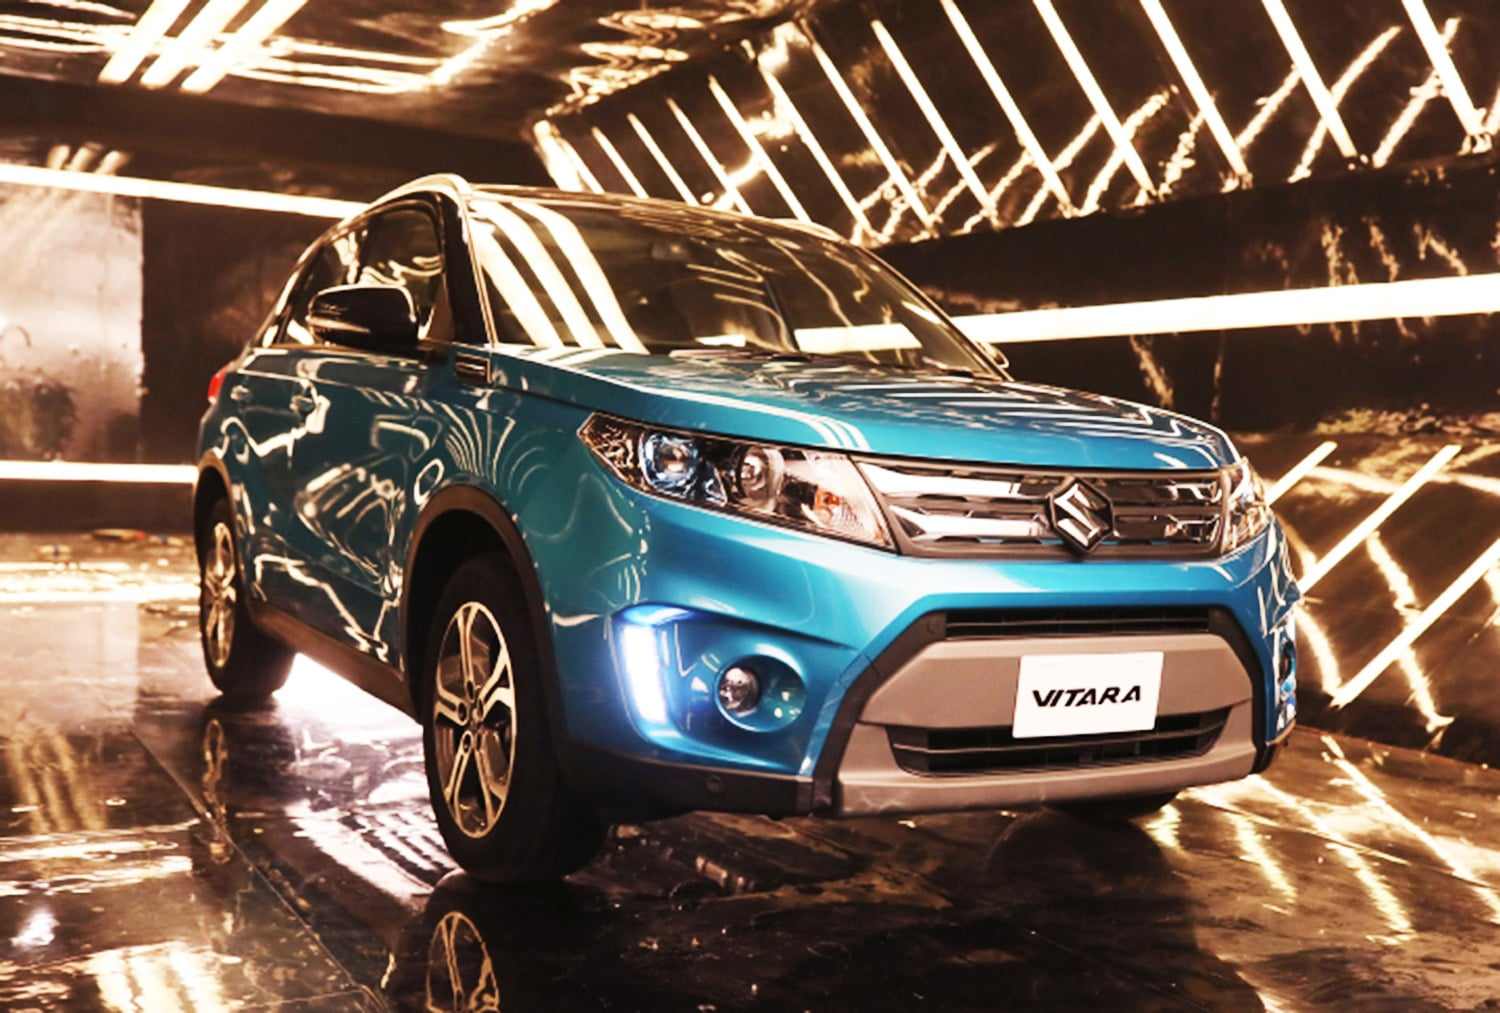 Suzuki Vitara Game Changing Suv Launches In Pakistan